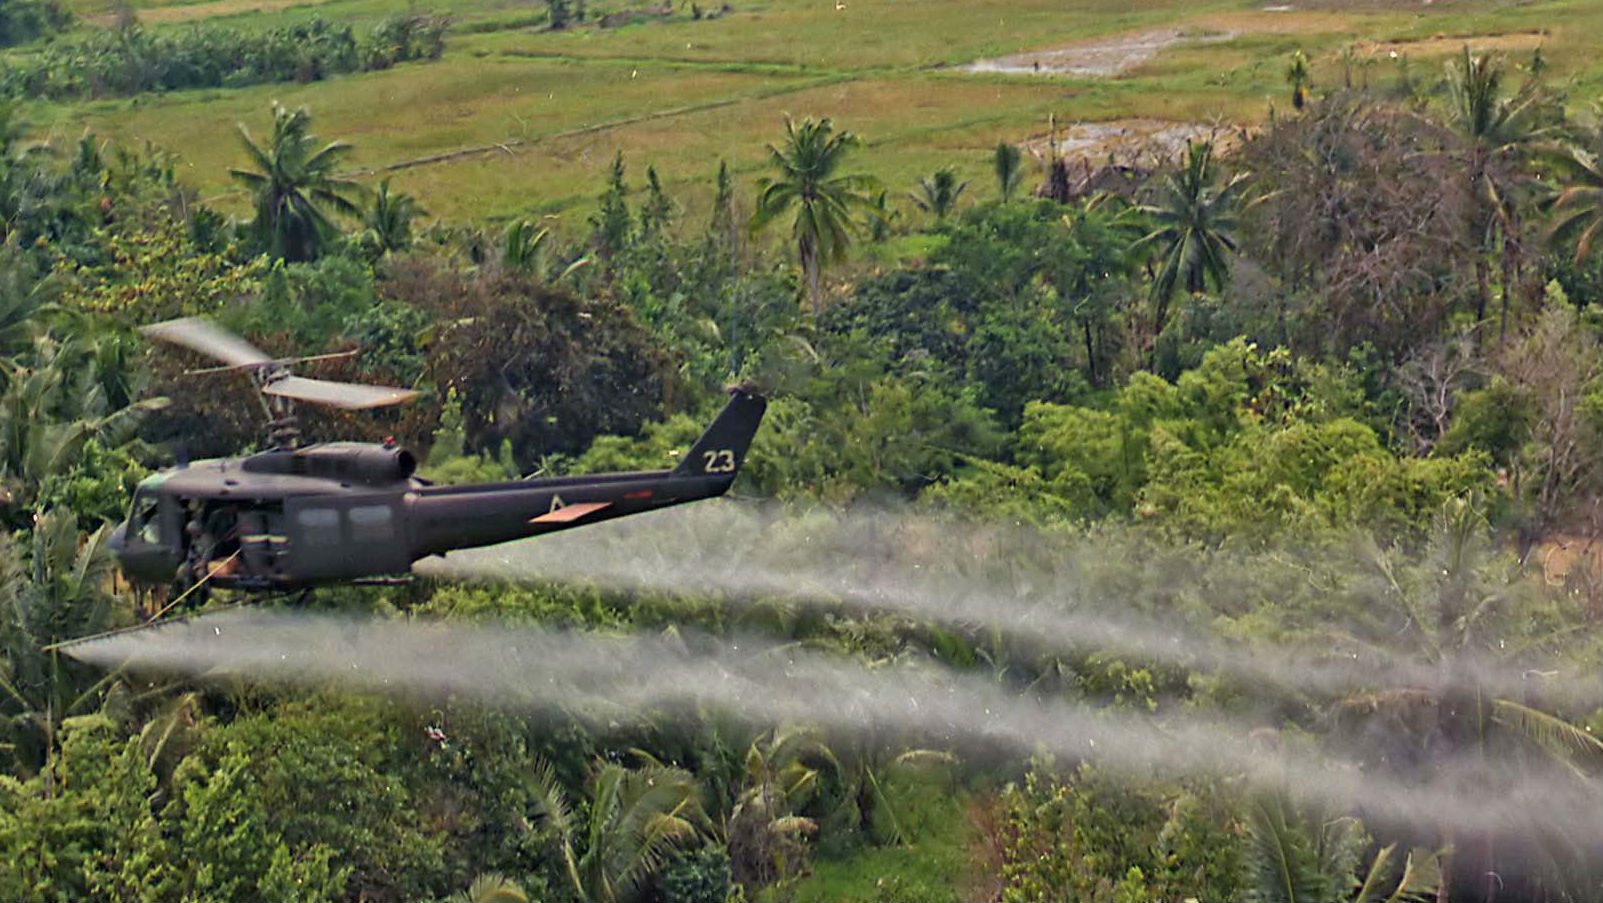 Japan hopes to rid Vietnam of that chemical spray, 40 years later